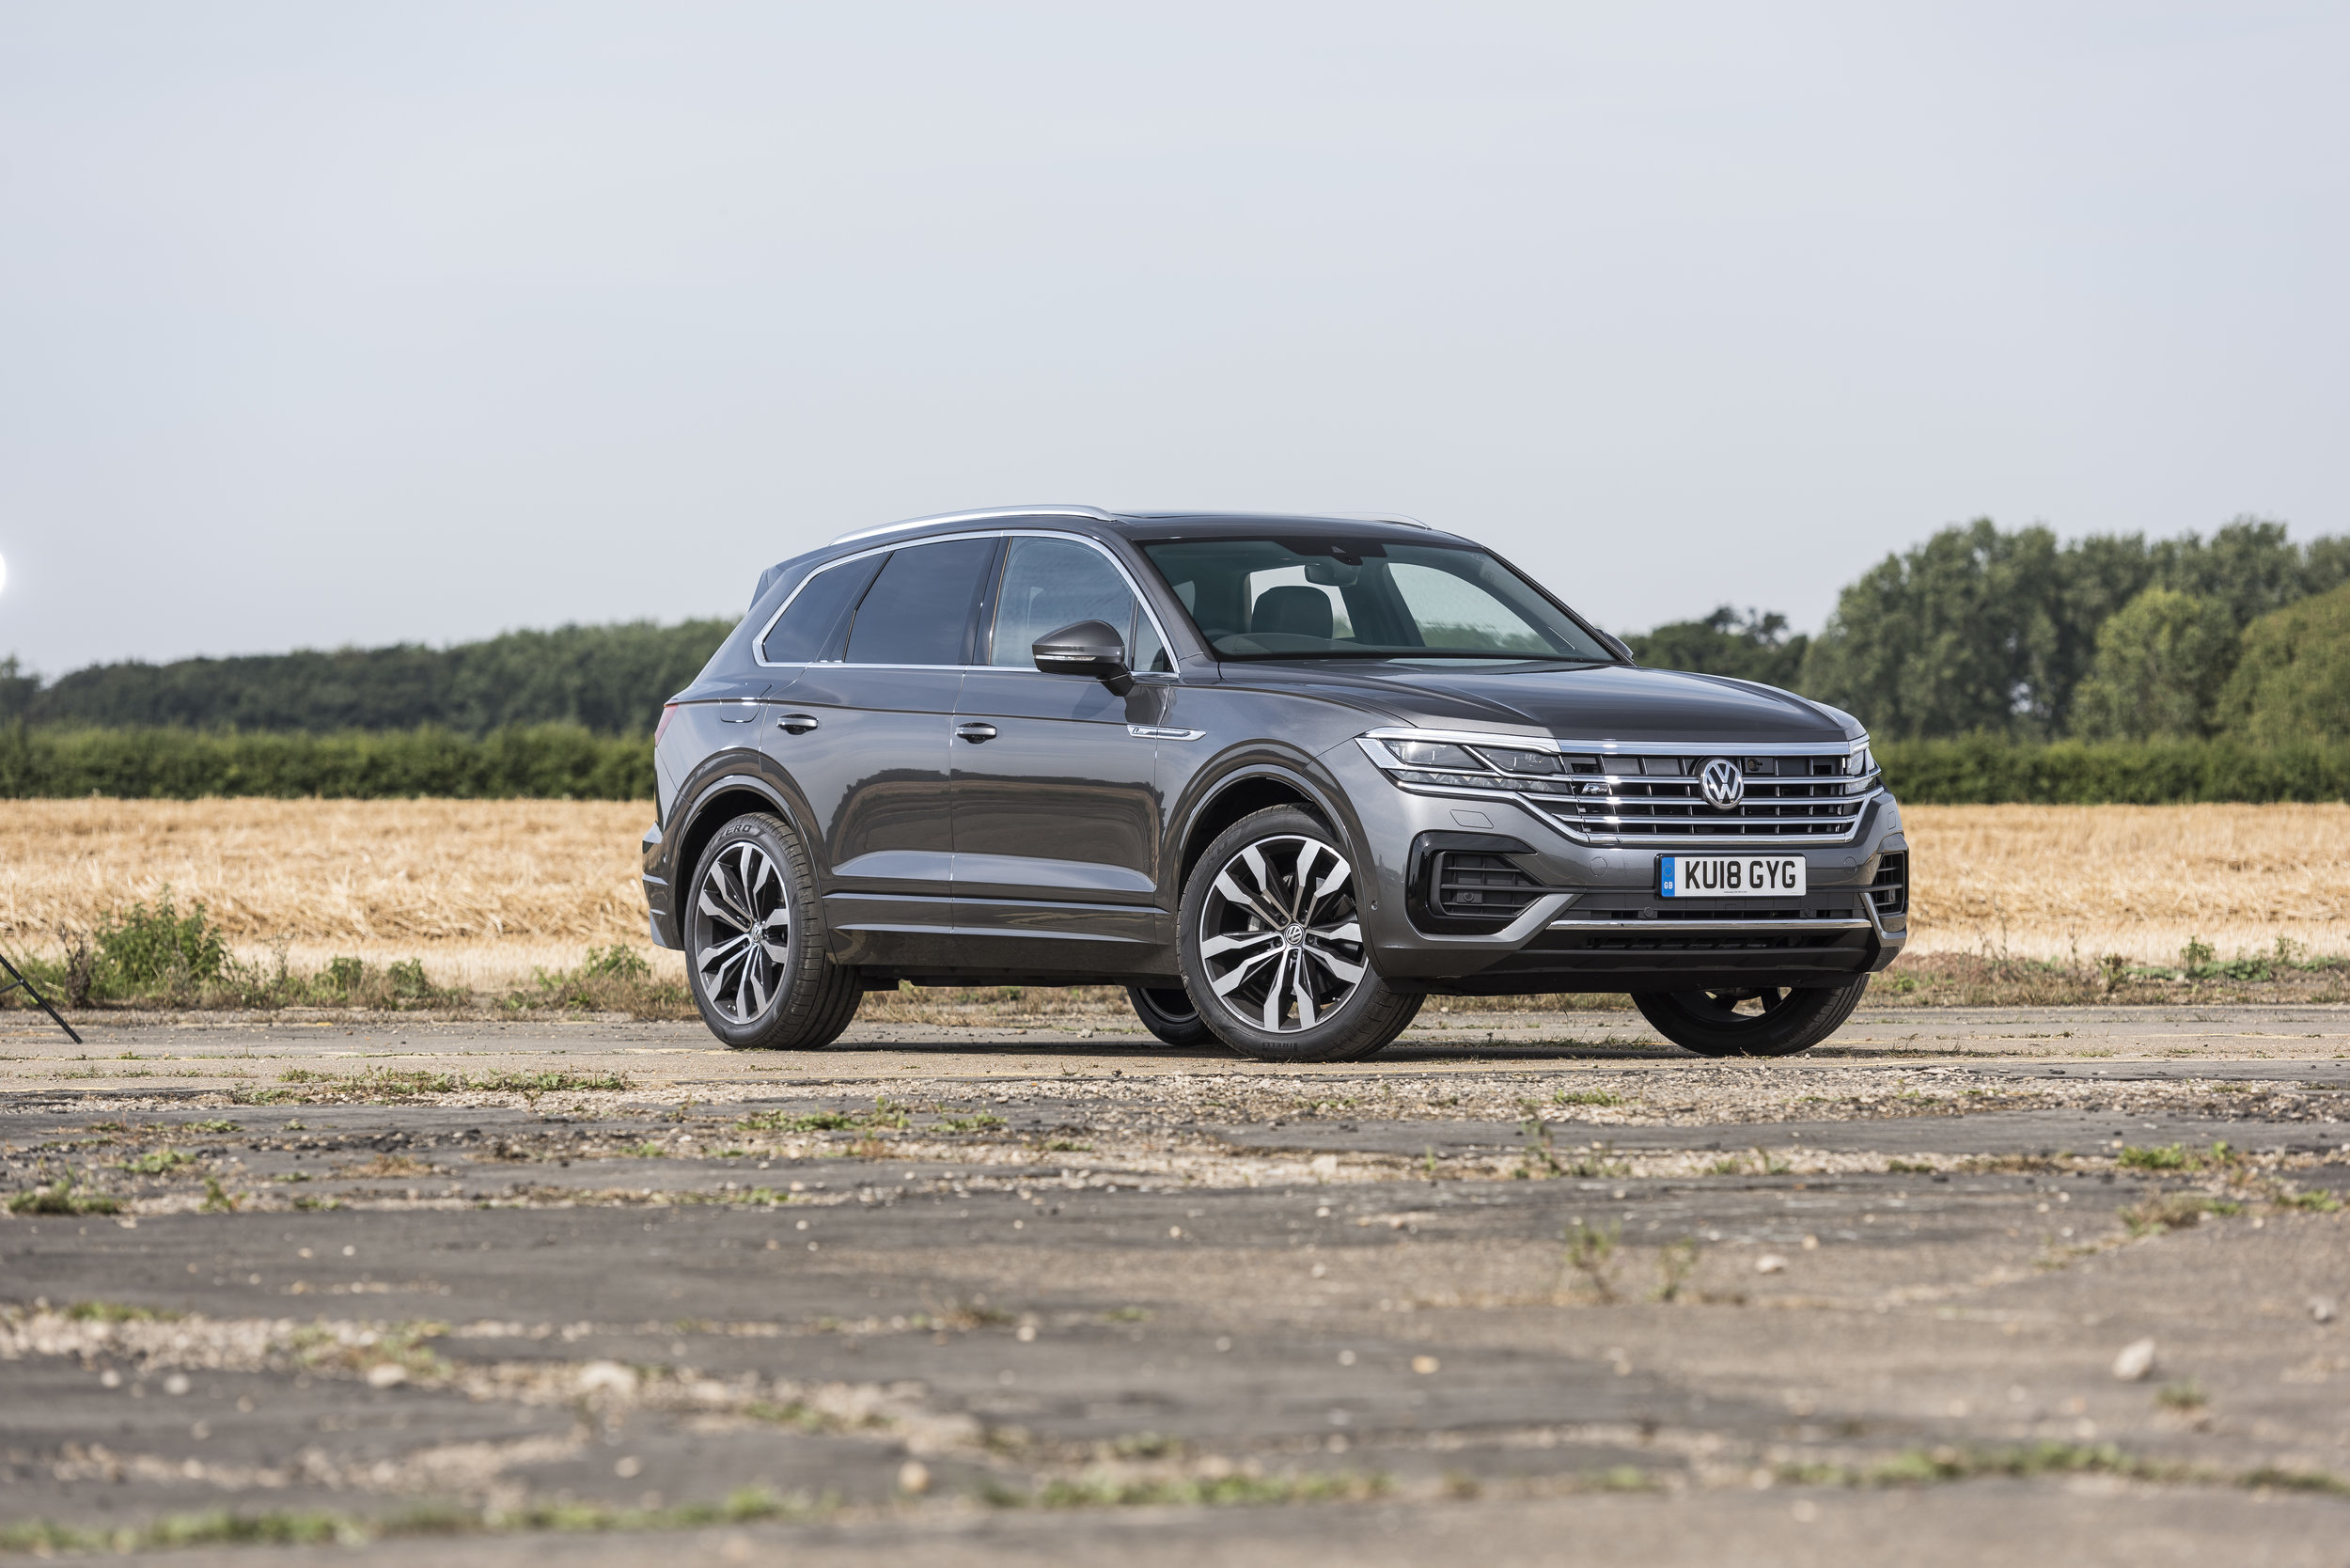 The Touareg boasts some clever kit to help you tow